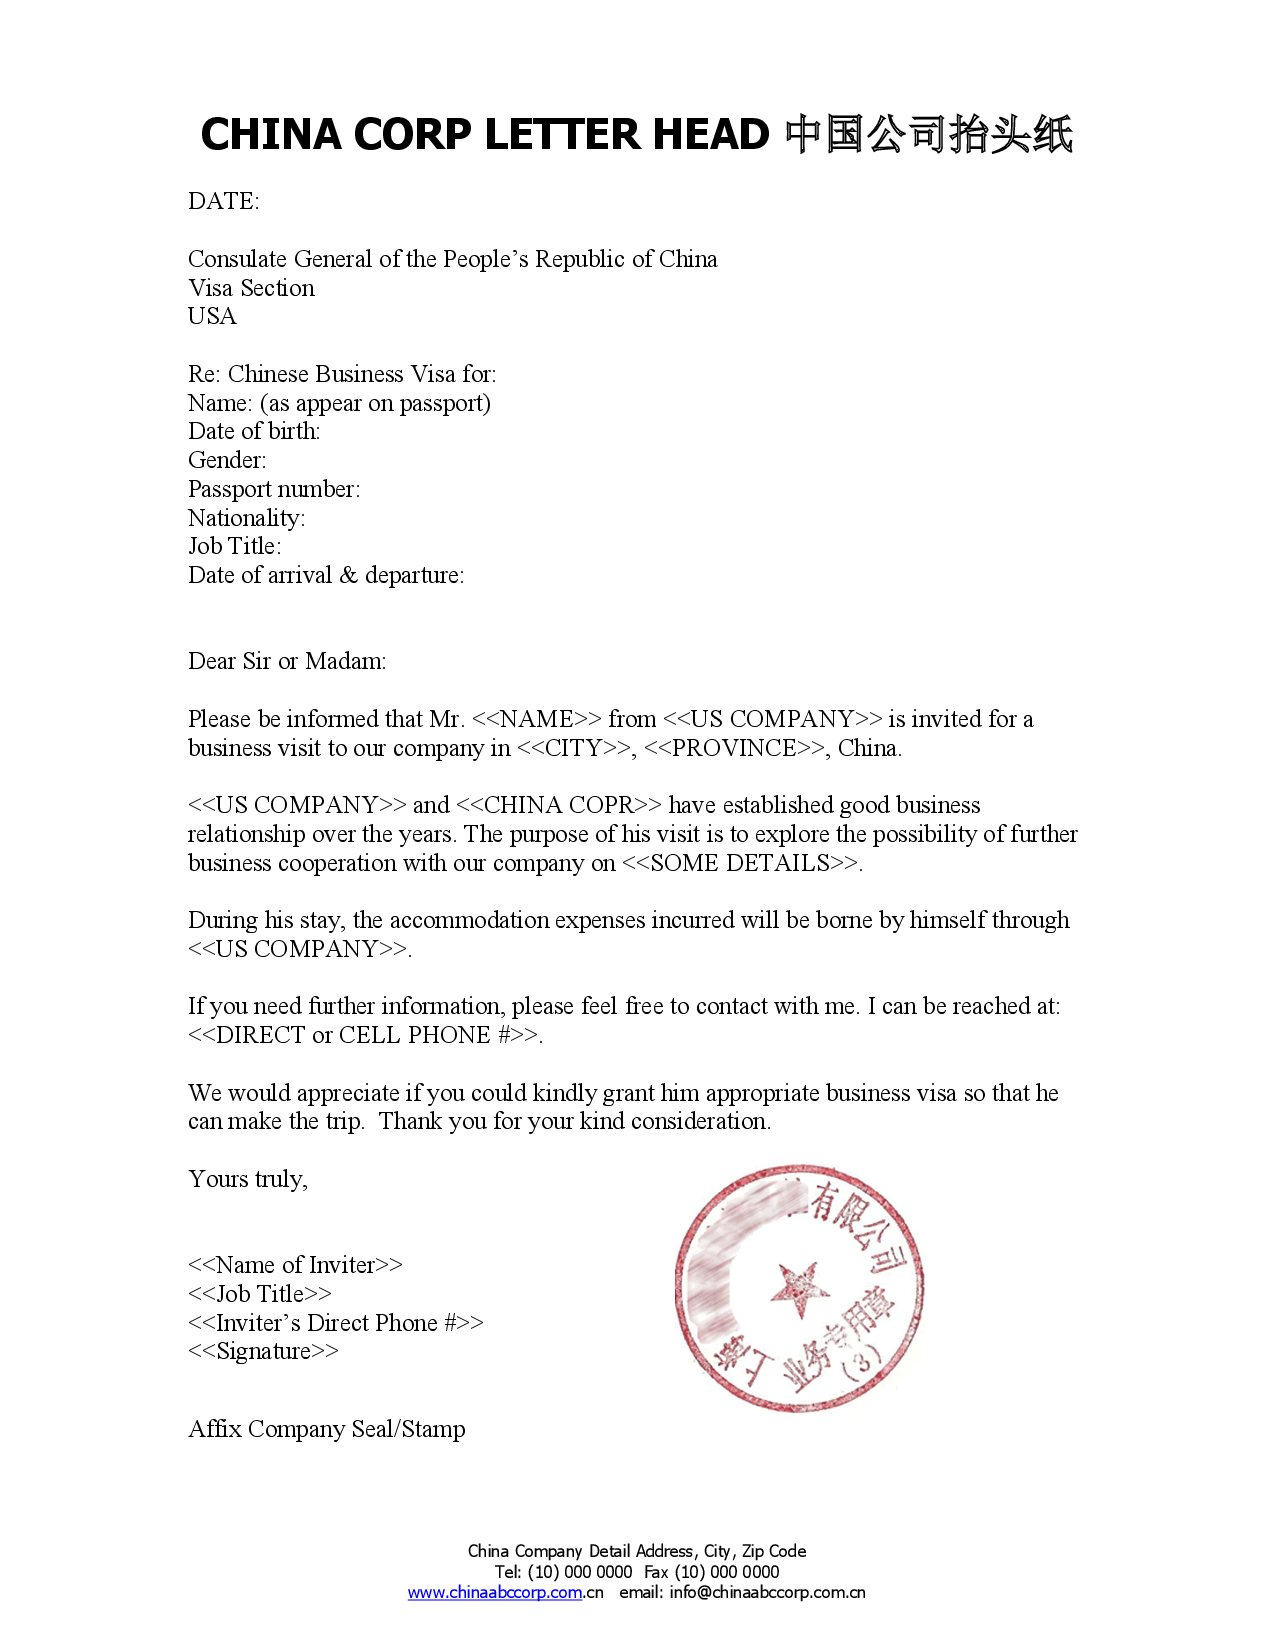 Format invitation letter for business visa to china lettervisa format invitation letter for business visa to china lettervisa invitation letter application letter sample thecheapjerseys Images